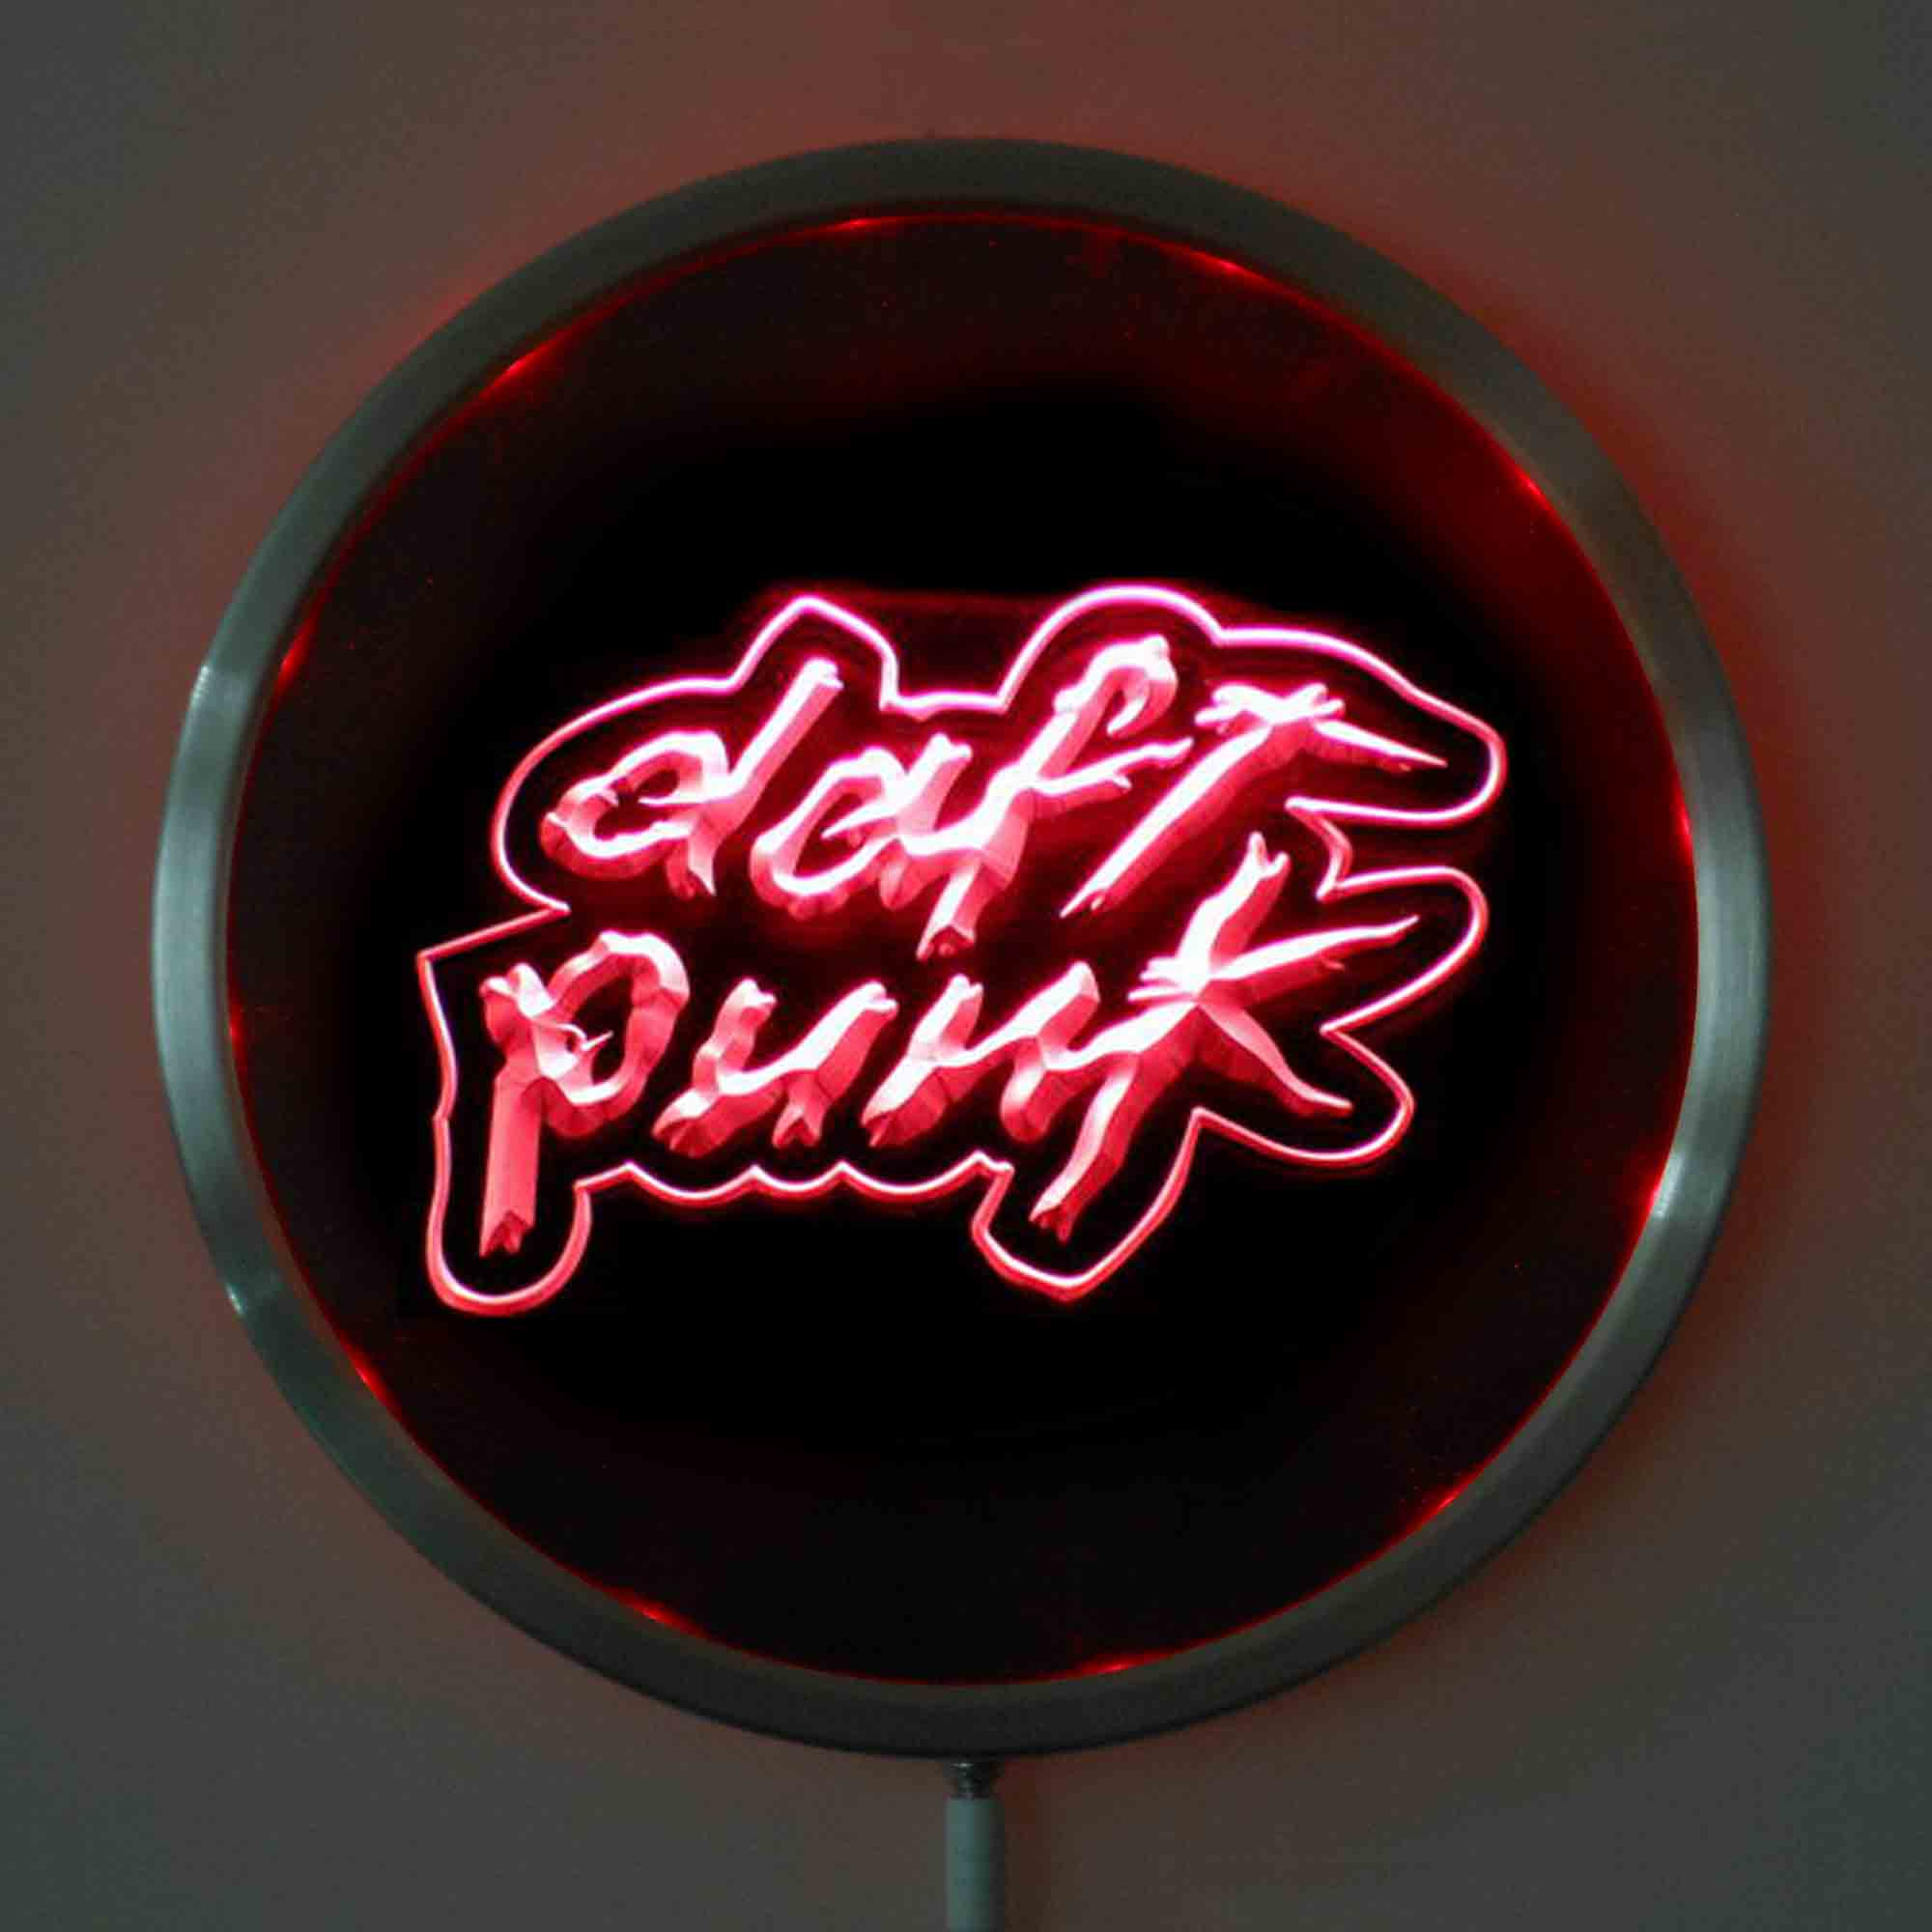 rs-0311 DISCOVERY DAFT PUNK LED Neon Round Signs 25cm/ 10 Inch - Bar Sign with RGB Multi-Color Remote Wireless Control Function